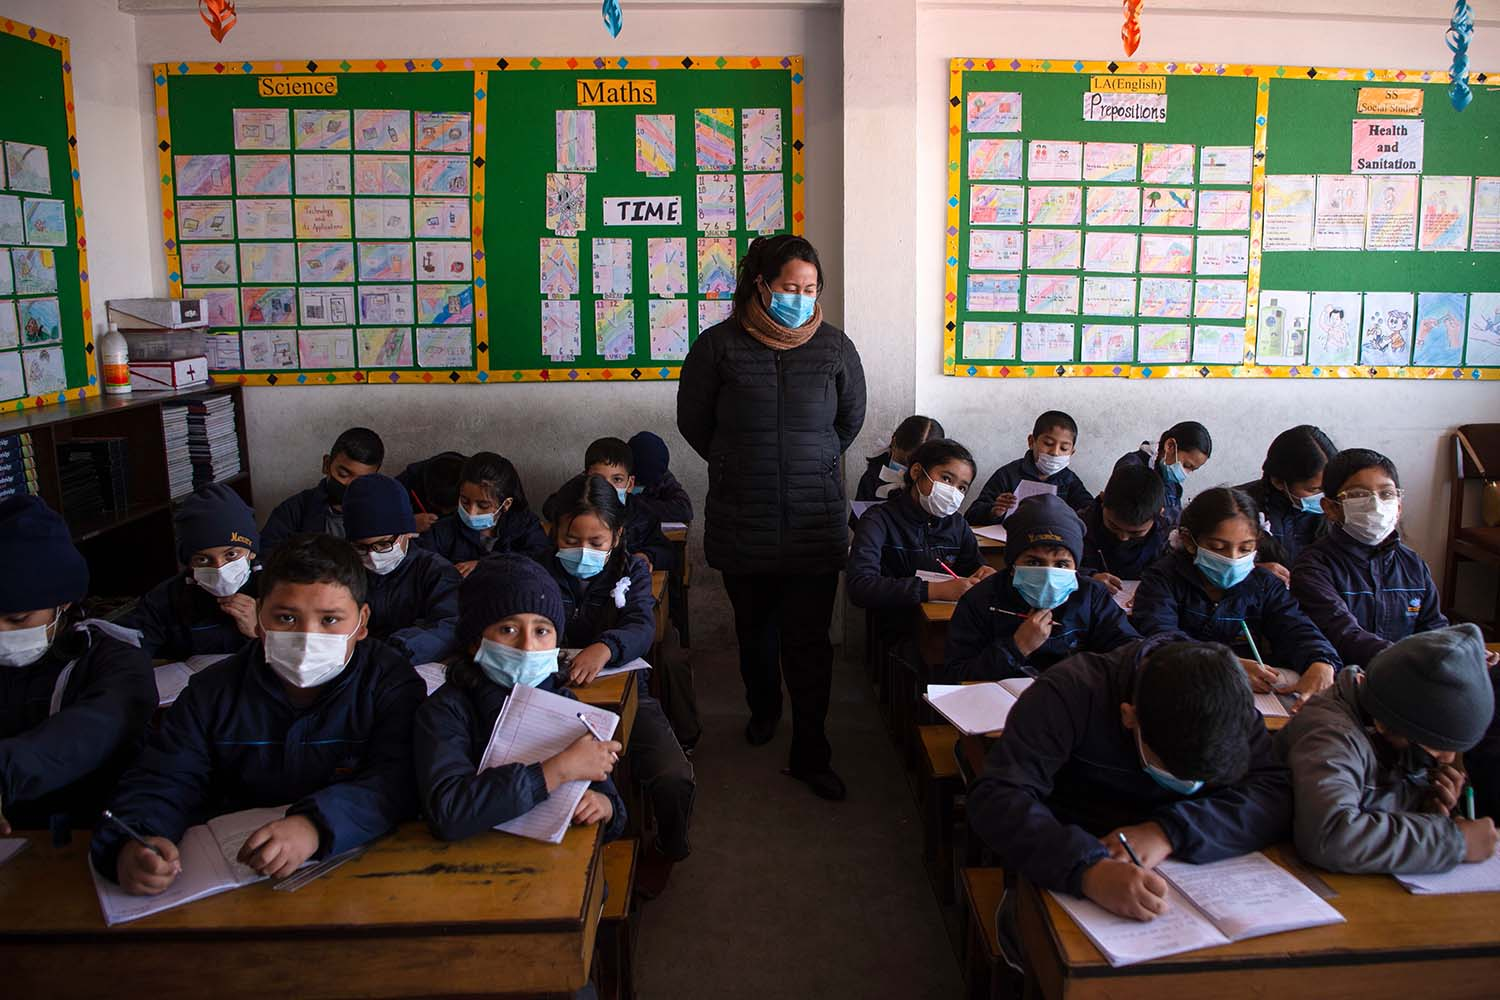 Nepali students, wearing face masks, attend a class at Matribhumi School in Bhaktapur, on the outskirts of Kathmandu, on Jan. 29 following the first confirmed case of the cornoavirus in the country. PRAKASH MATHEMA/AFP via Getty Images